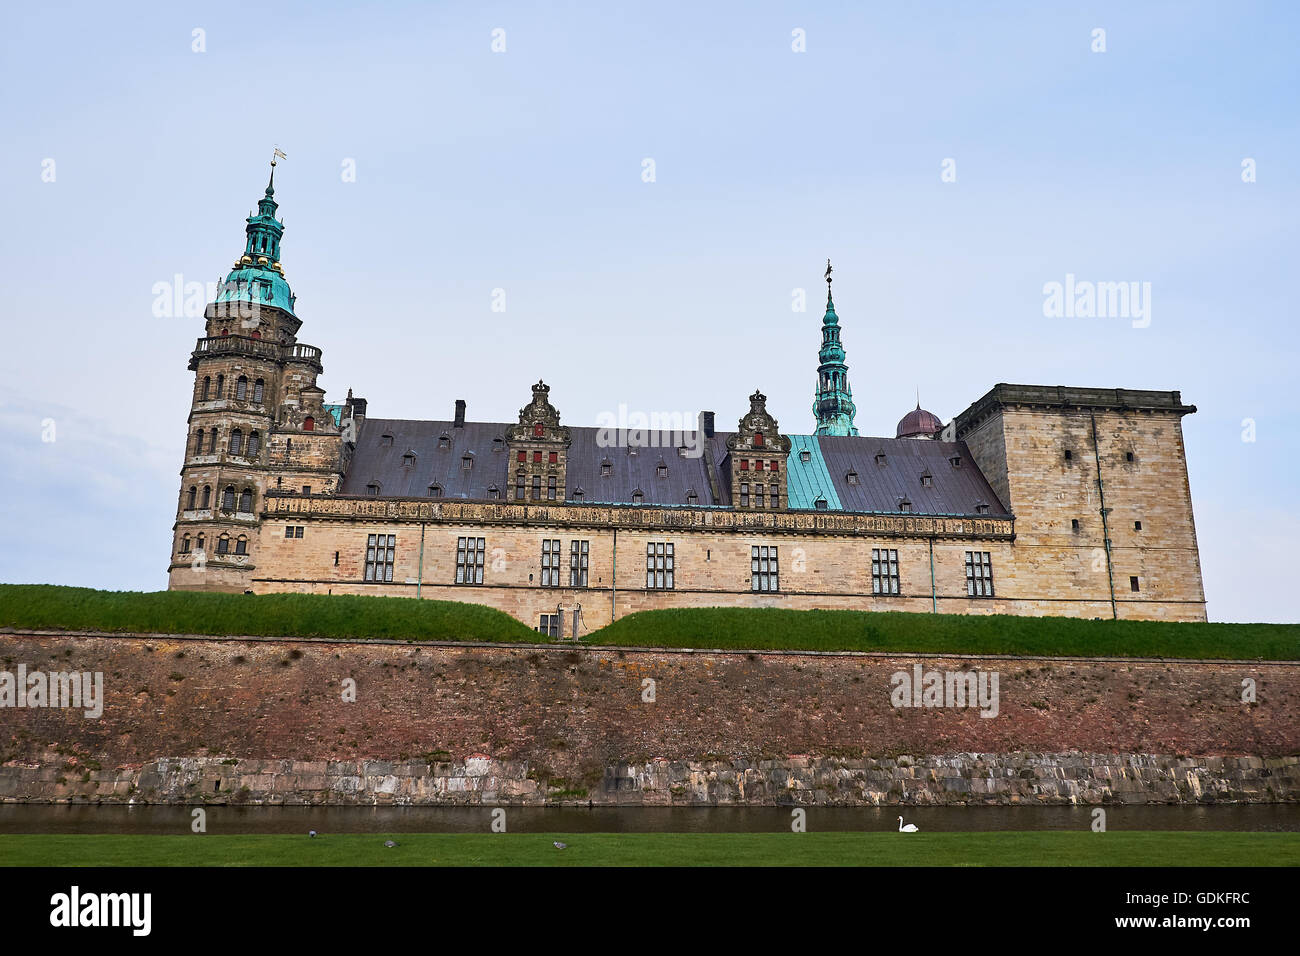 Looking up at the Elsinore Castle in Denmark, from the other side of the moat, where a white swan is swimming around - Stock Image